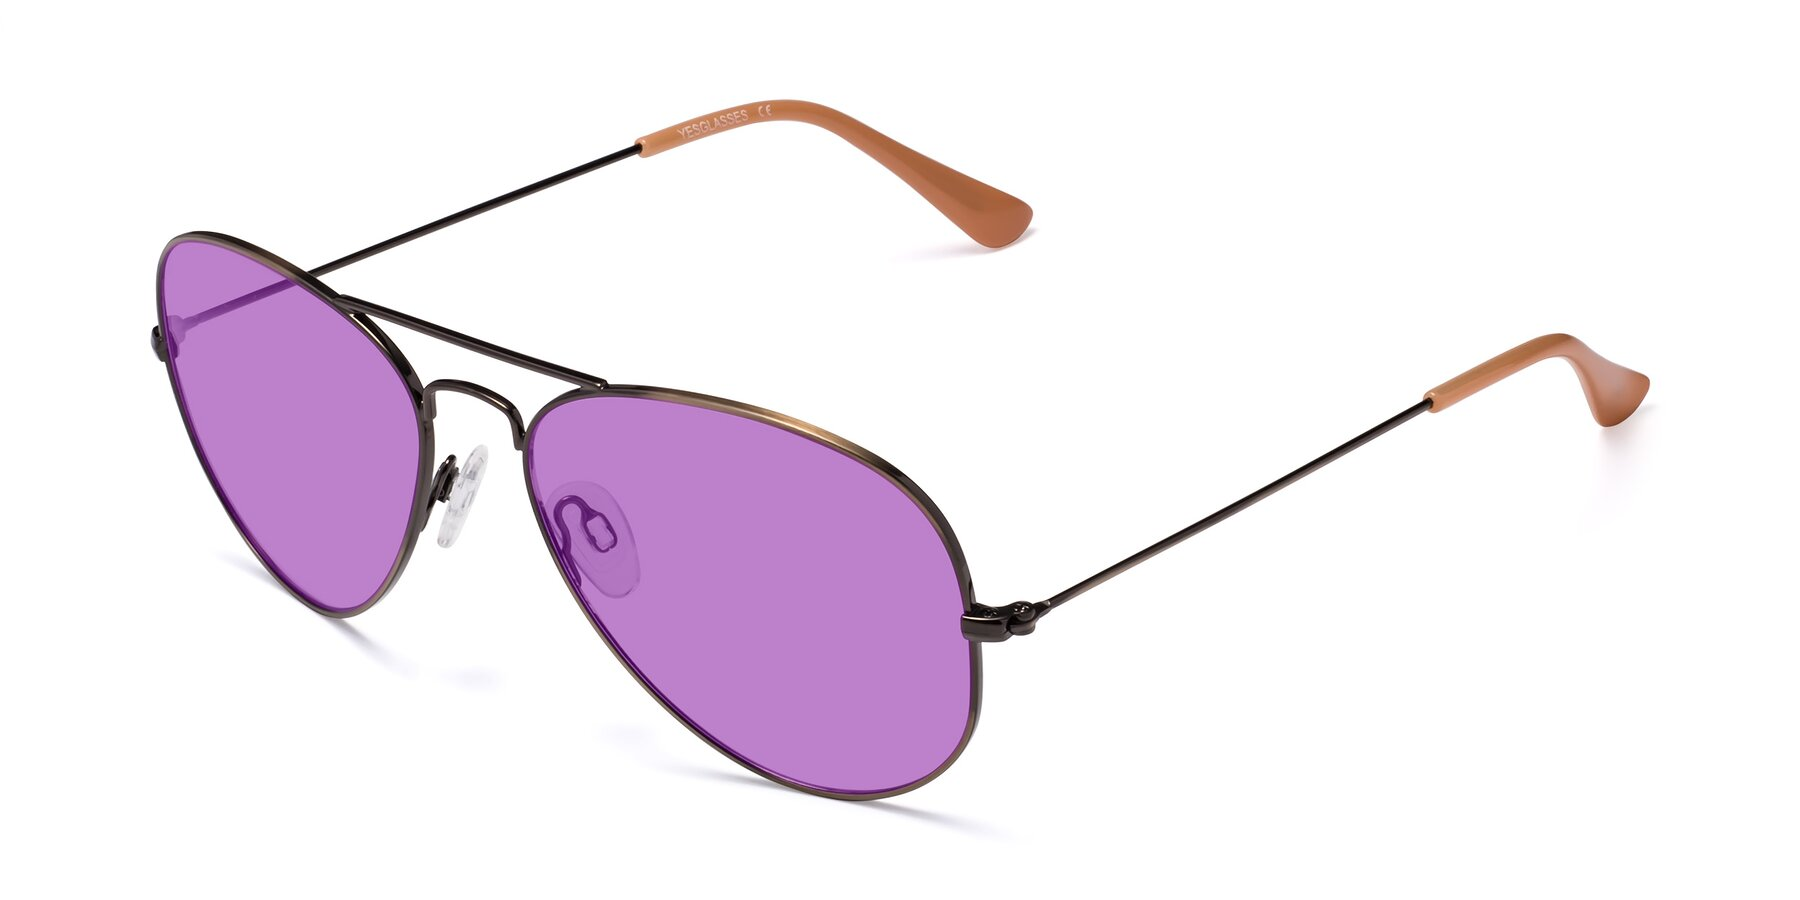 Angle of Yesterday in Antique Bronze with Medium Purple Tinted Lenses